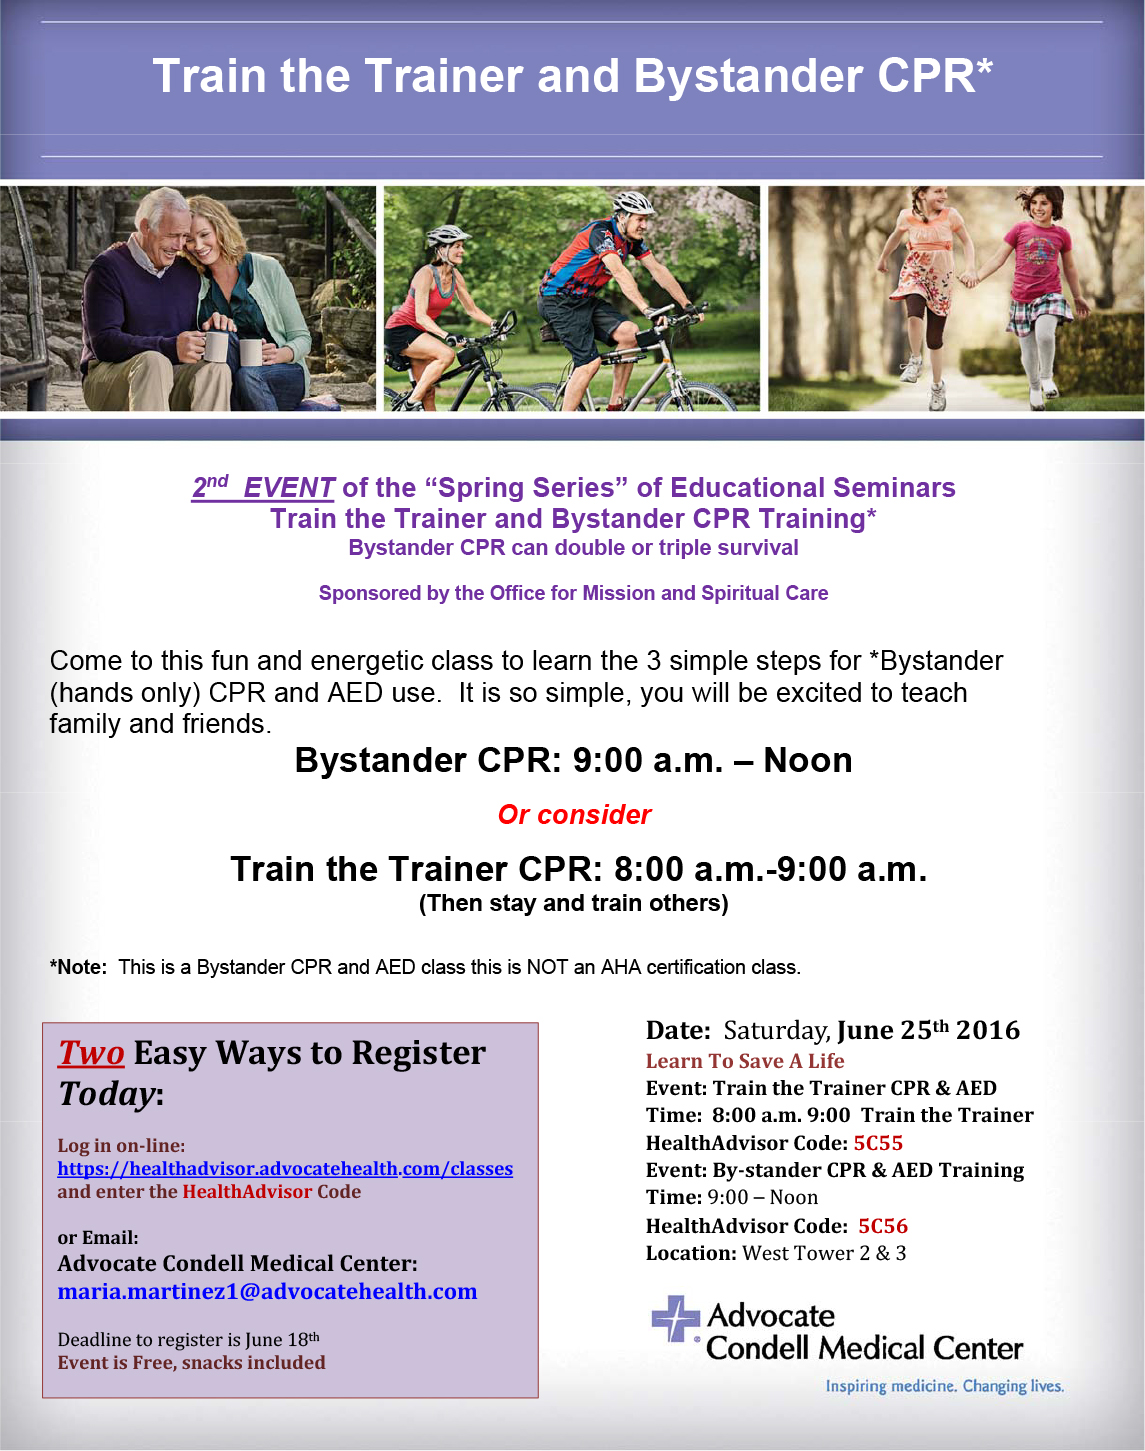 Register today train the trainer by stander june 25 2016 auubhq